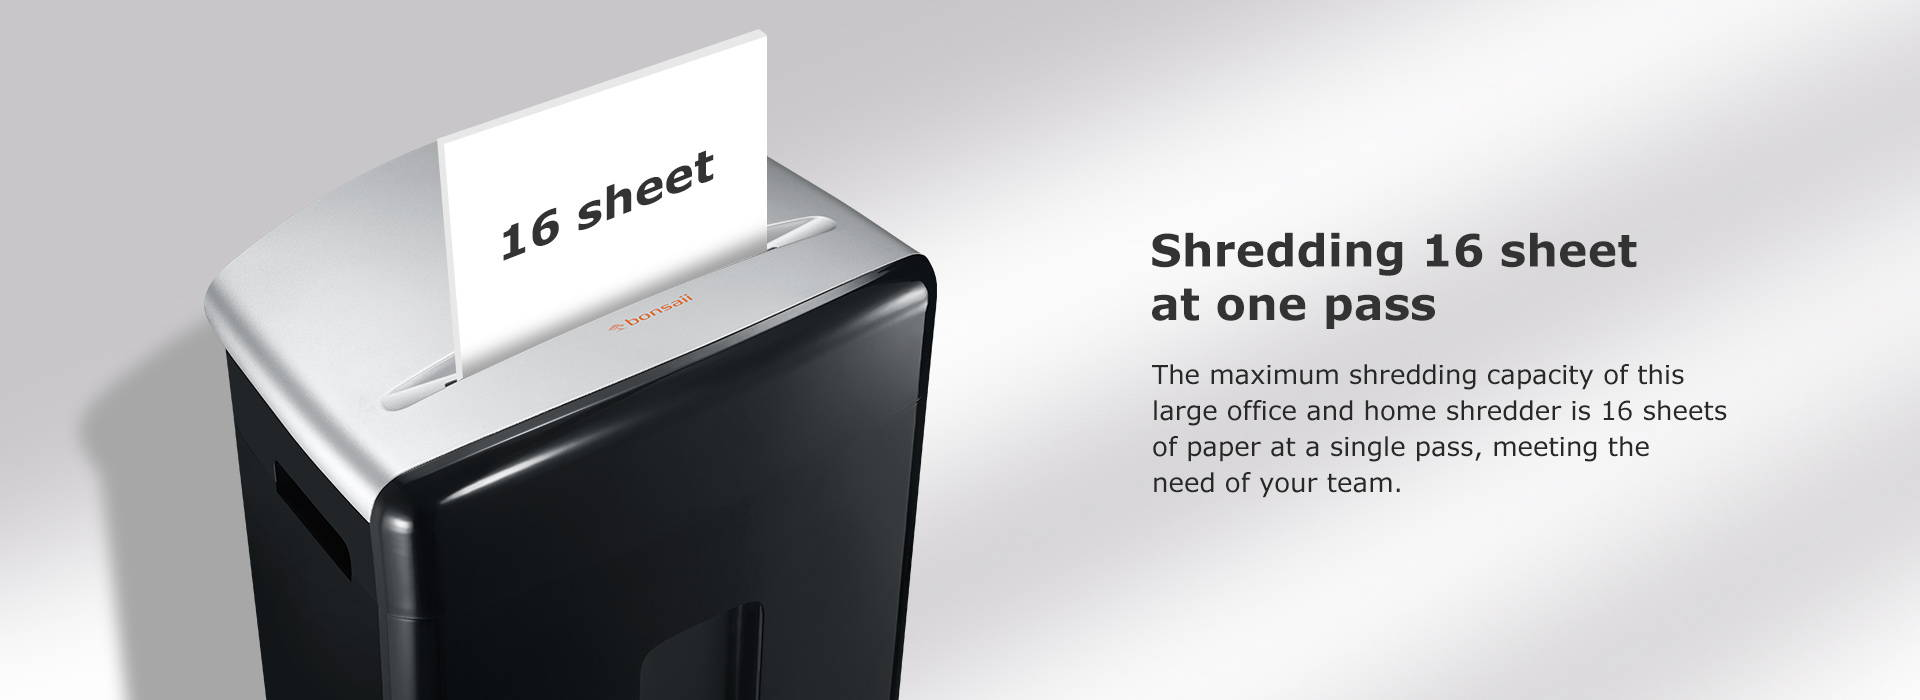 Shredding 16 sheet at one pass The maximum shredding capacity of this large office and home shredder is 16 sheets of paper at a single pass, meeting the need of your team.